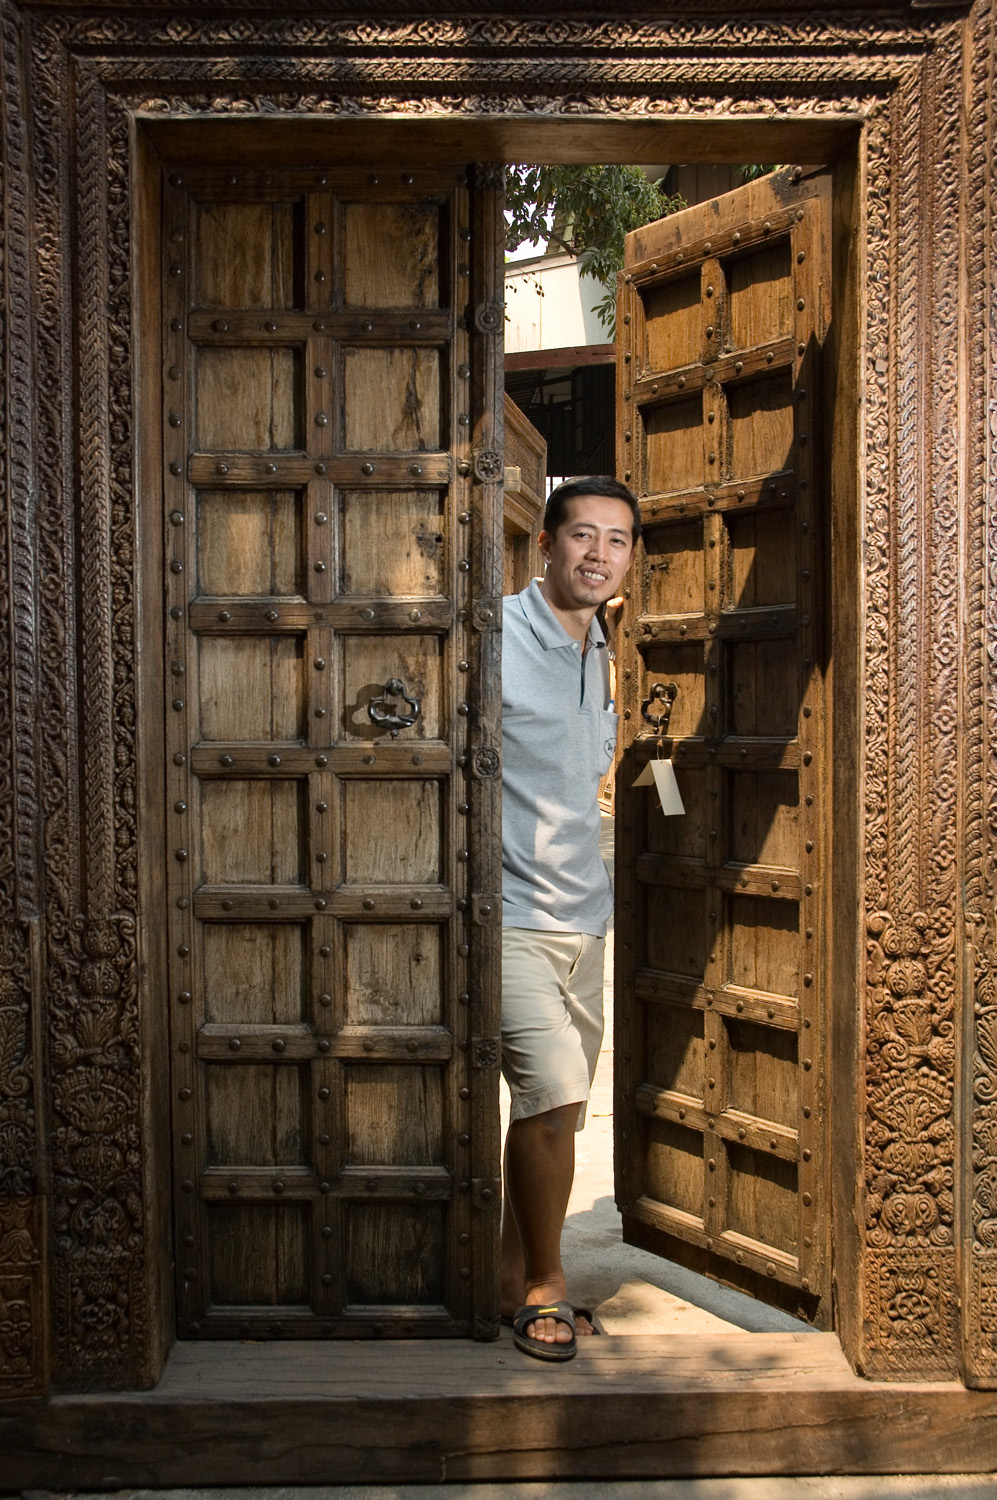 Anusak Parnichyakorn, owner of De Siam colonial and antique furniture store poses in one of the several antique Indian doorways he has on offer.While his business has grown exponentially since starting five years ago, Anusak Parnichyakorn still wears shorts and flip-flops to work and rides a motor scooter.